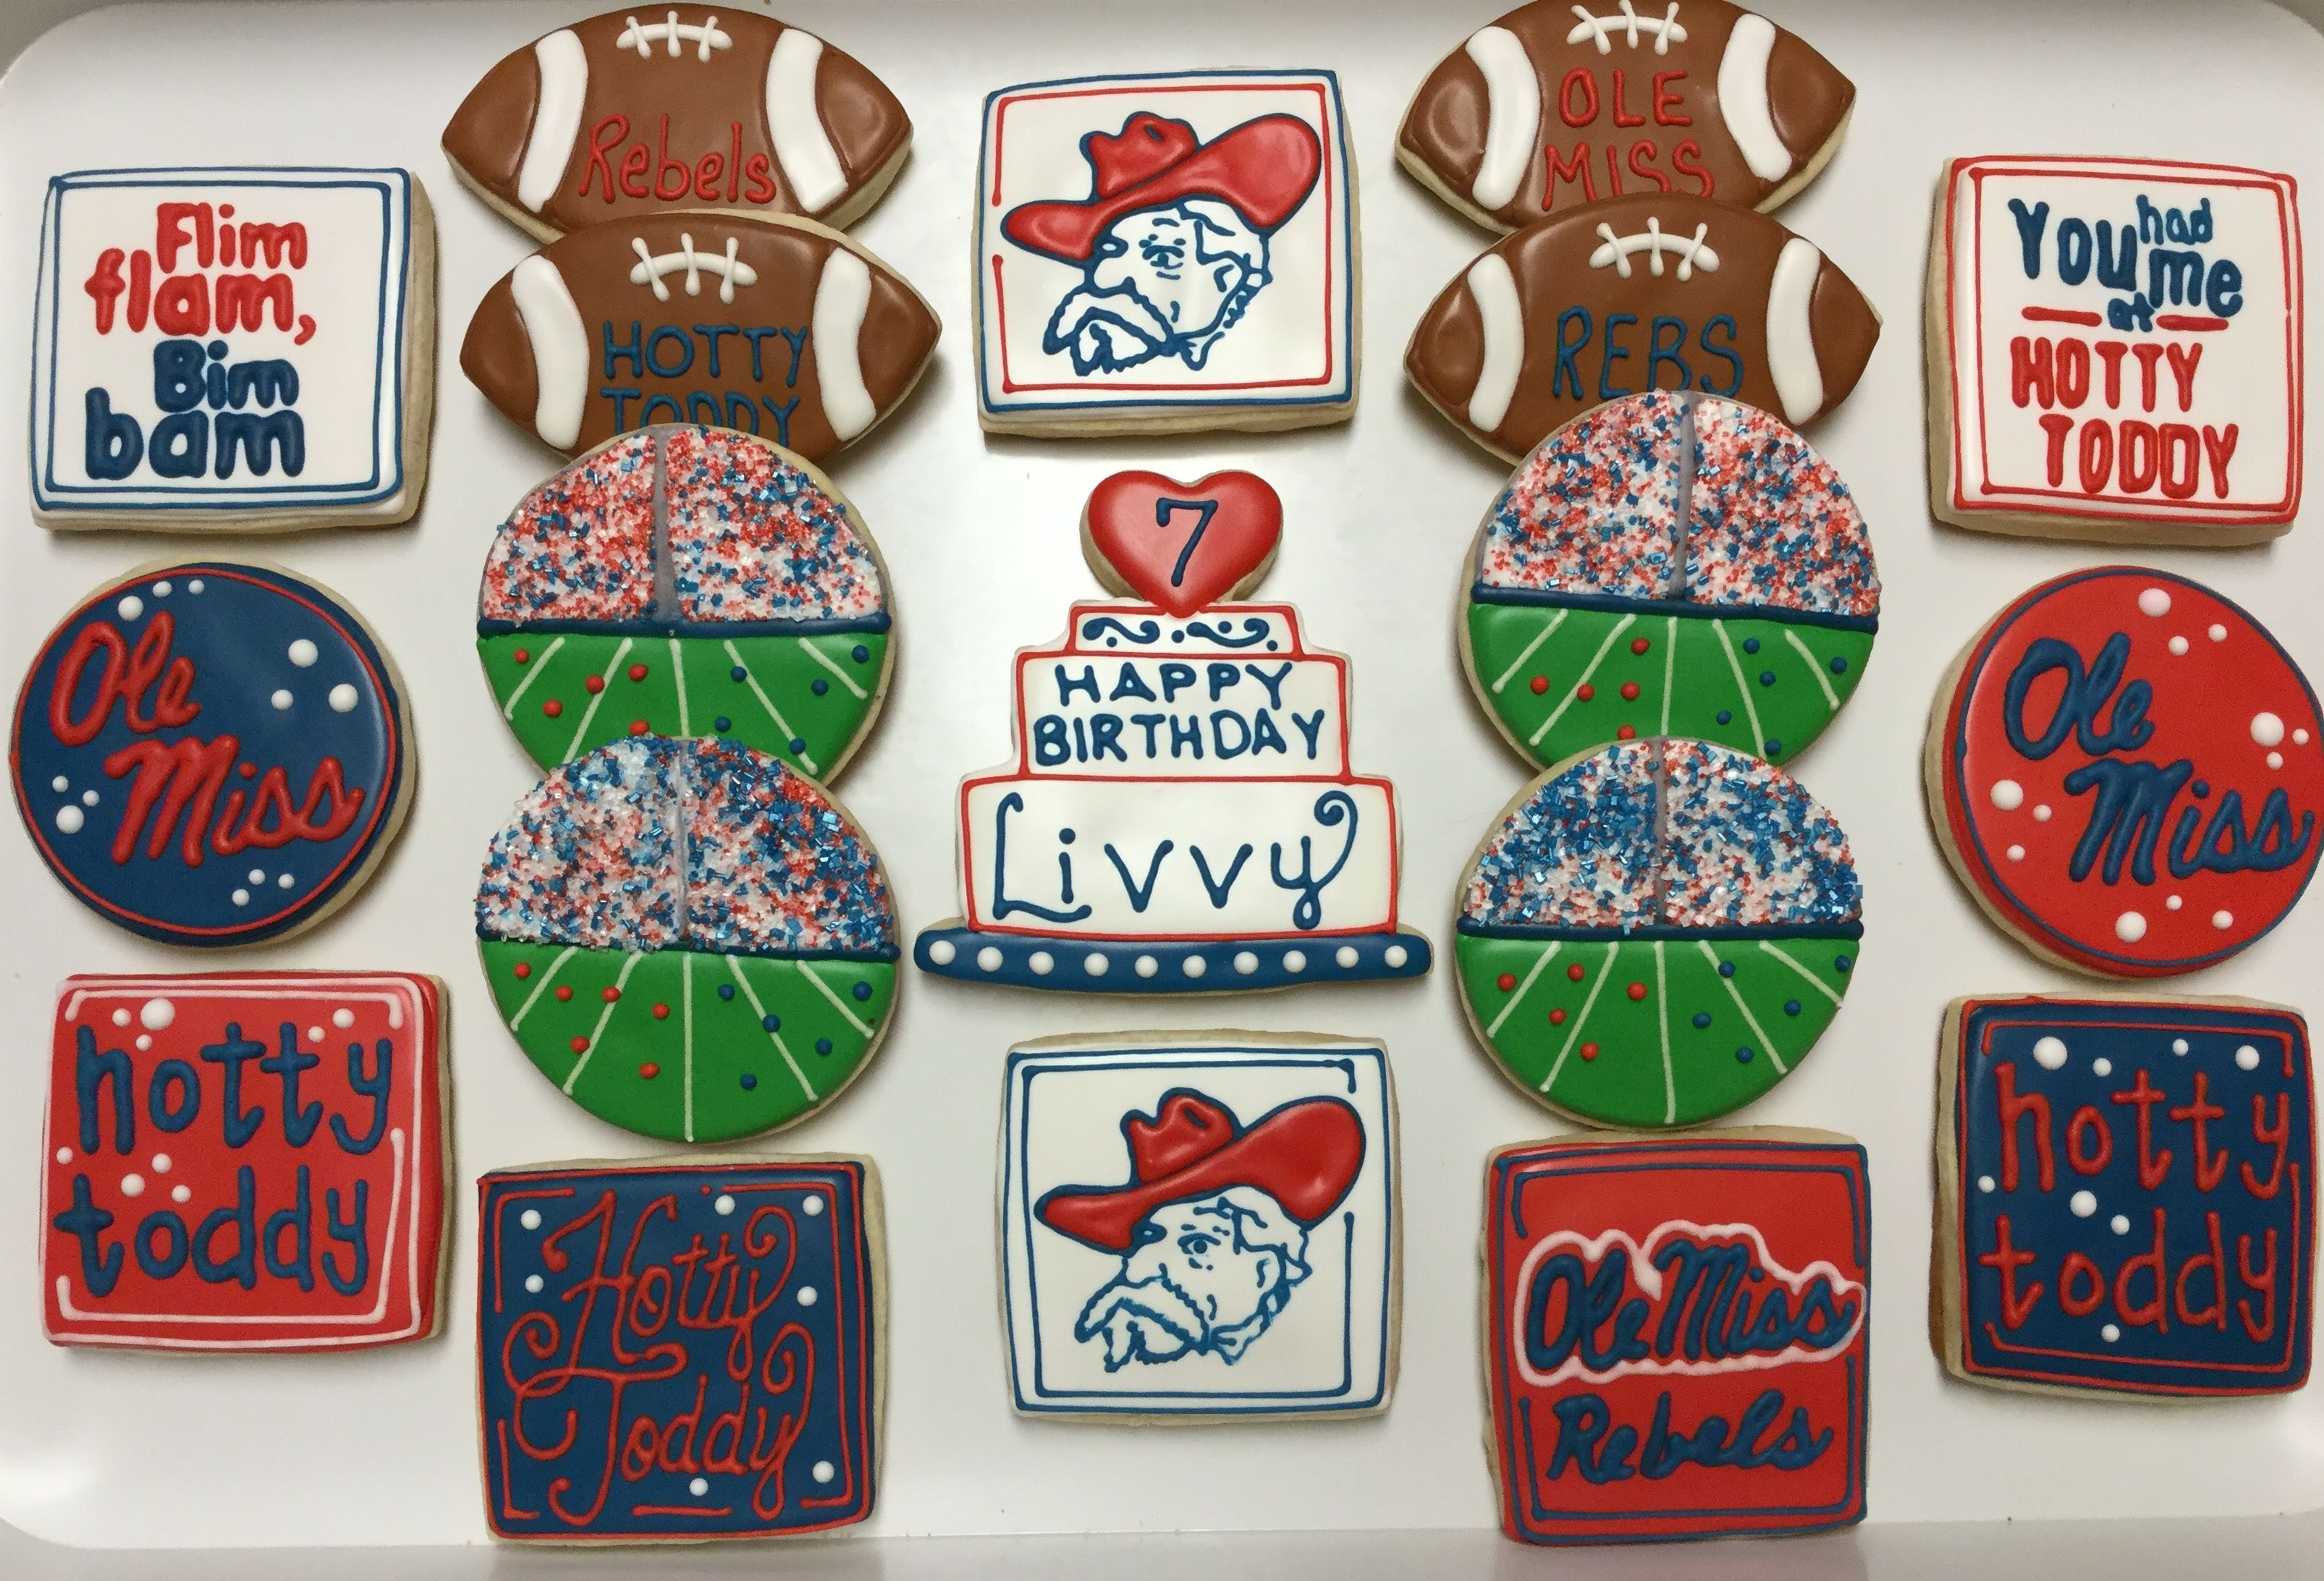 Ole Miss Football Birthday Decorated Sugar Cookies By I Am The Cookie Lady Sugar Cookies Decorated Football Cookies Ole Miss Football